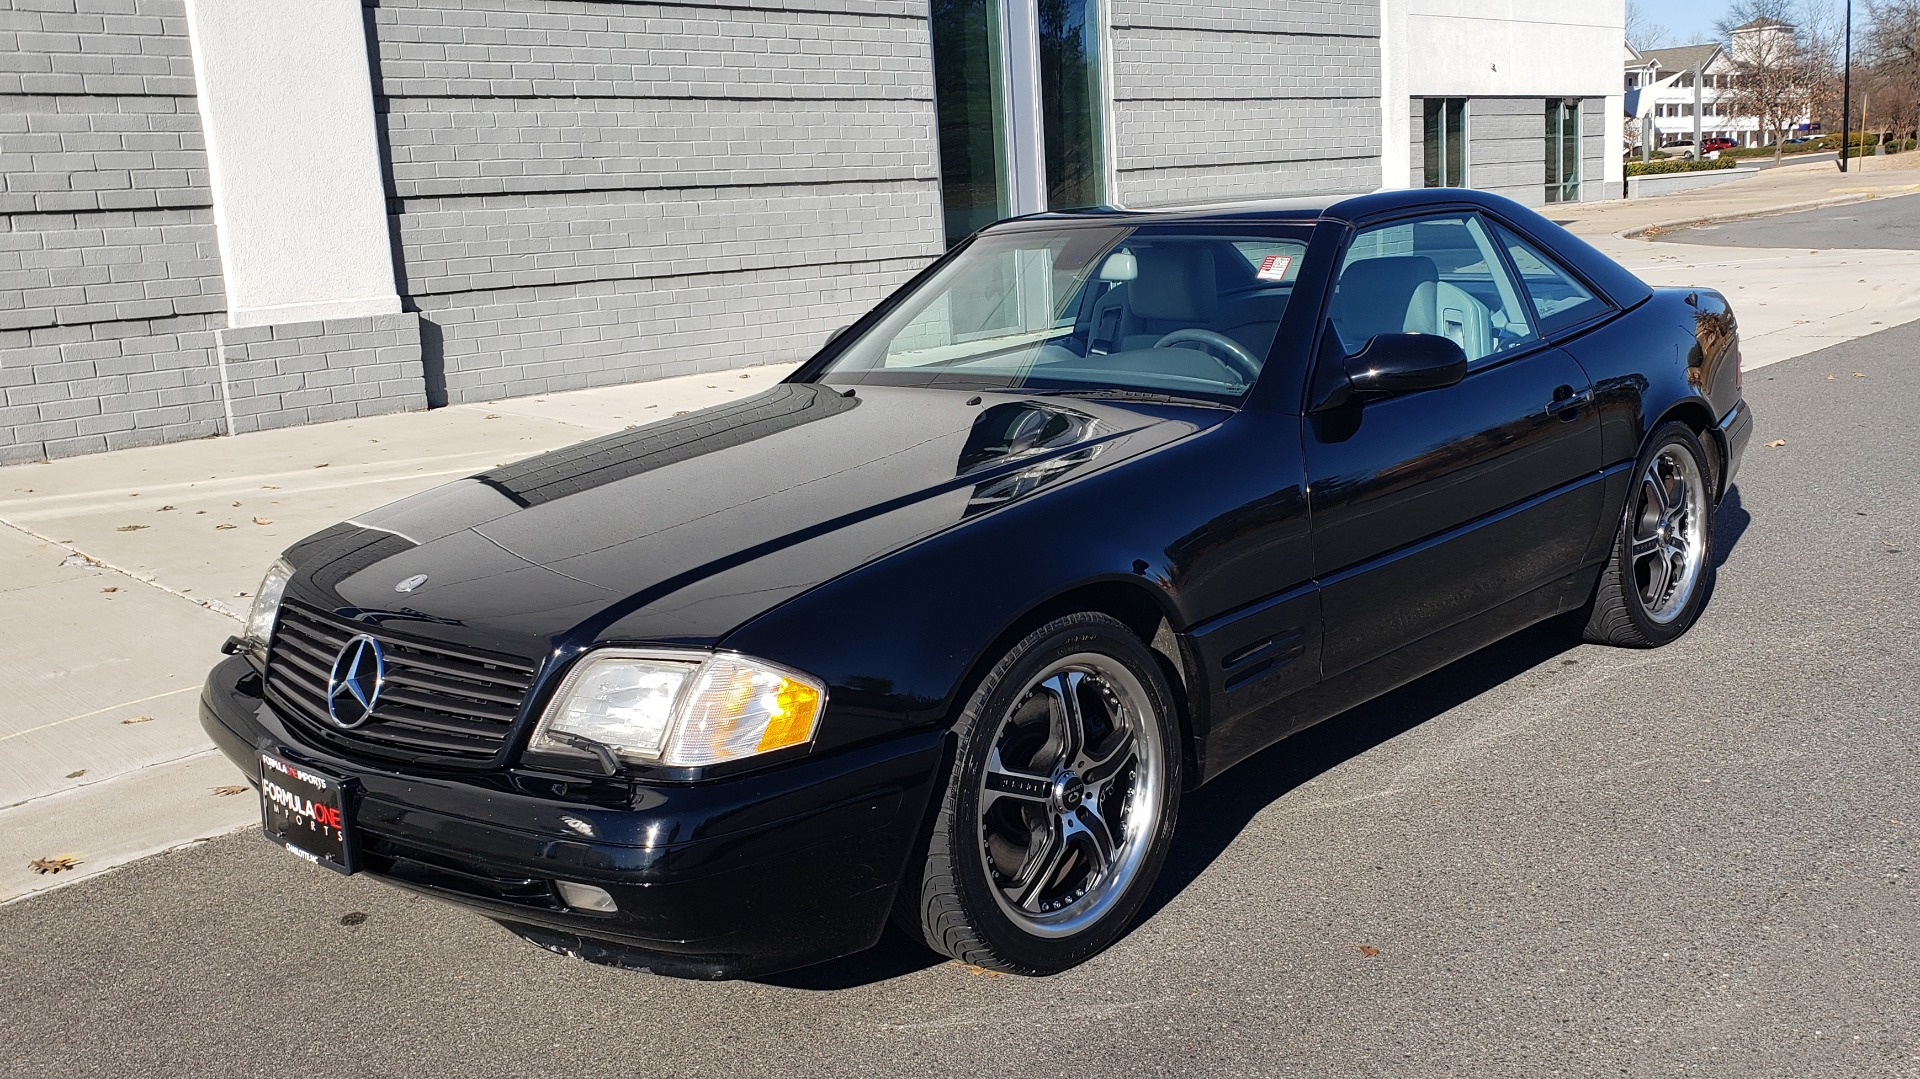 Used 1999 Mercedes-Benz SL-CLASS ROADSTER / 5.0L V8 (302HP) / 5-SPD AUTO / 18IN WHEELS for sale $9,995 at Formula Imports in Charlotte NC 28227 1